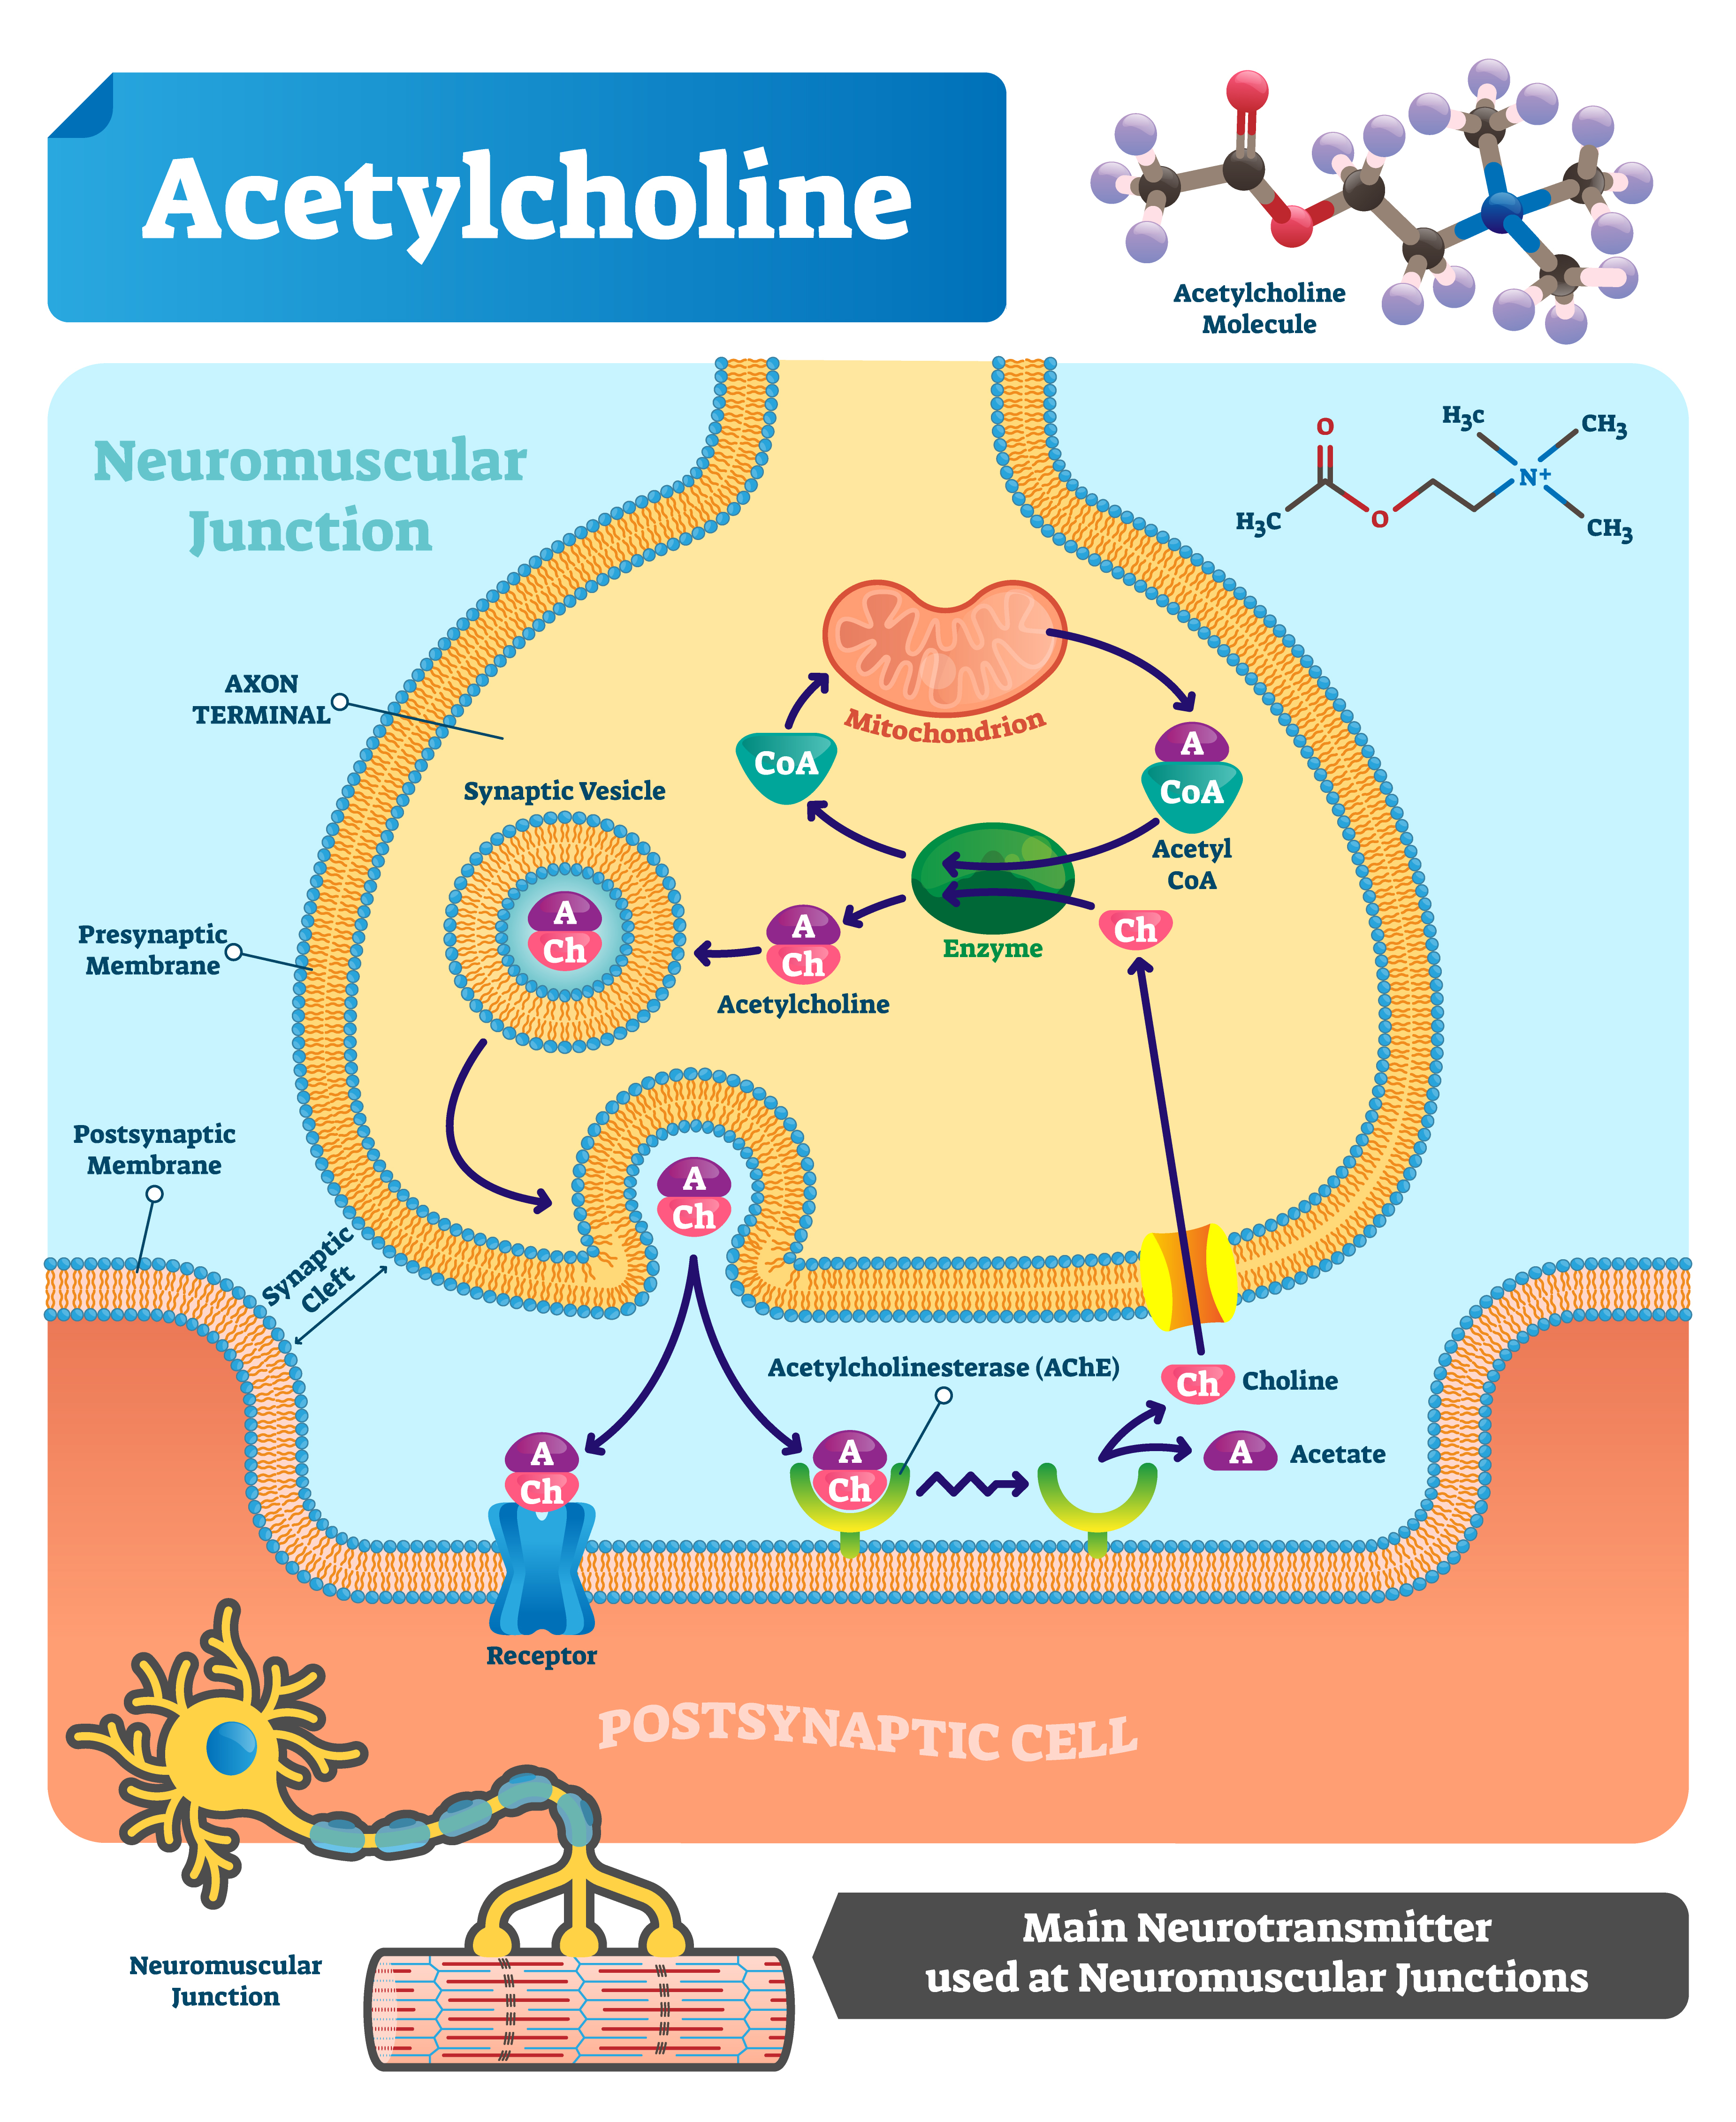 Choline is the basic substance in acetylcholine metabolism. How does acetylcholine work?